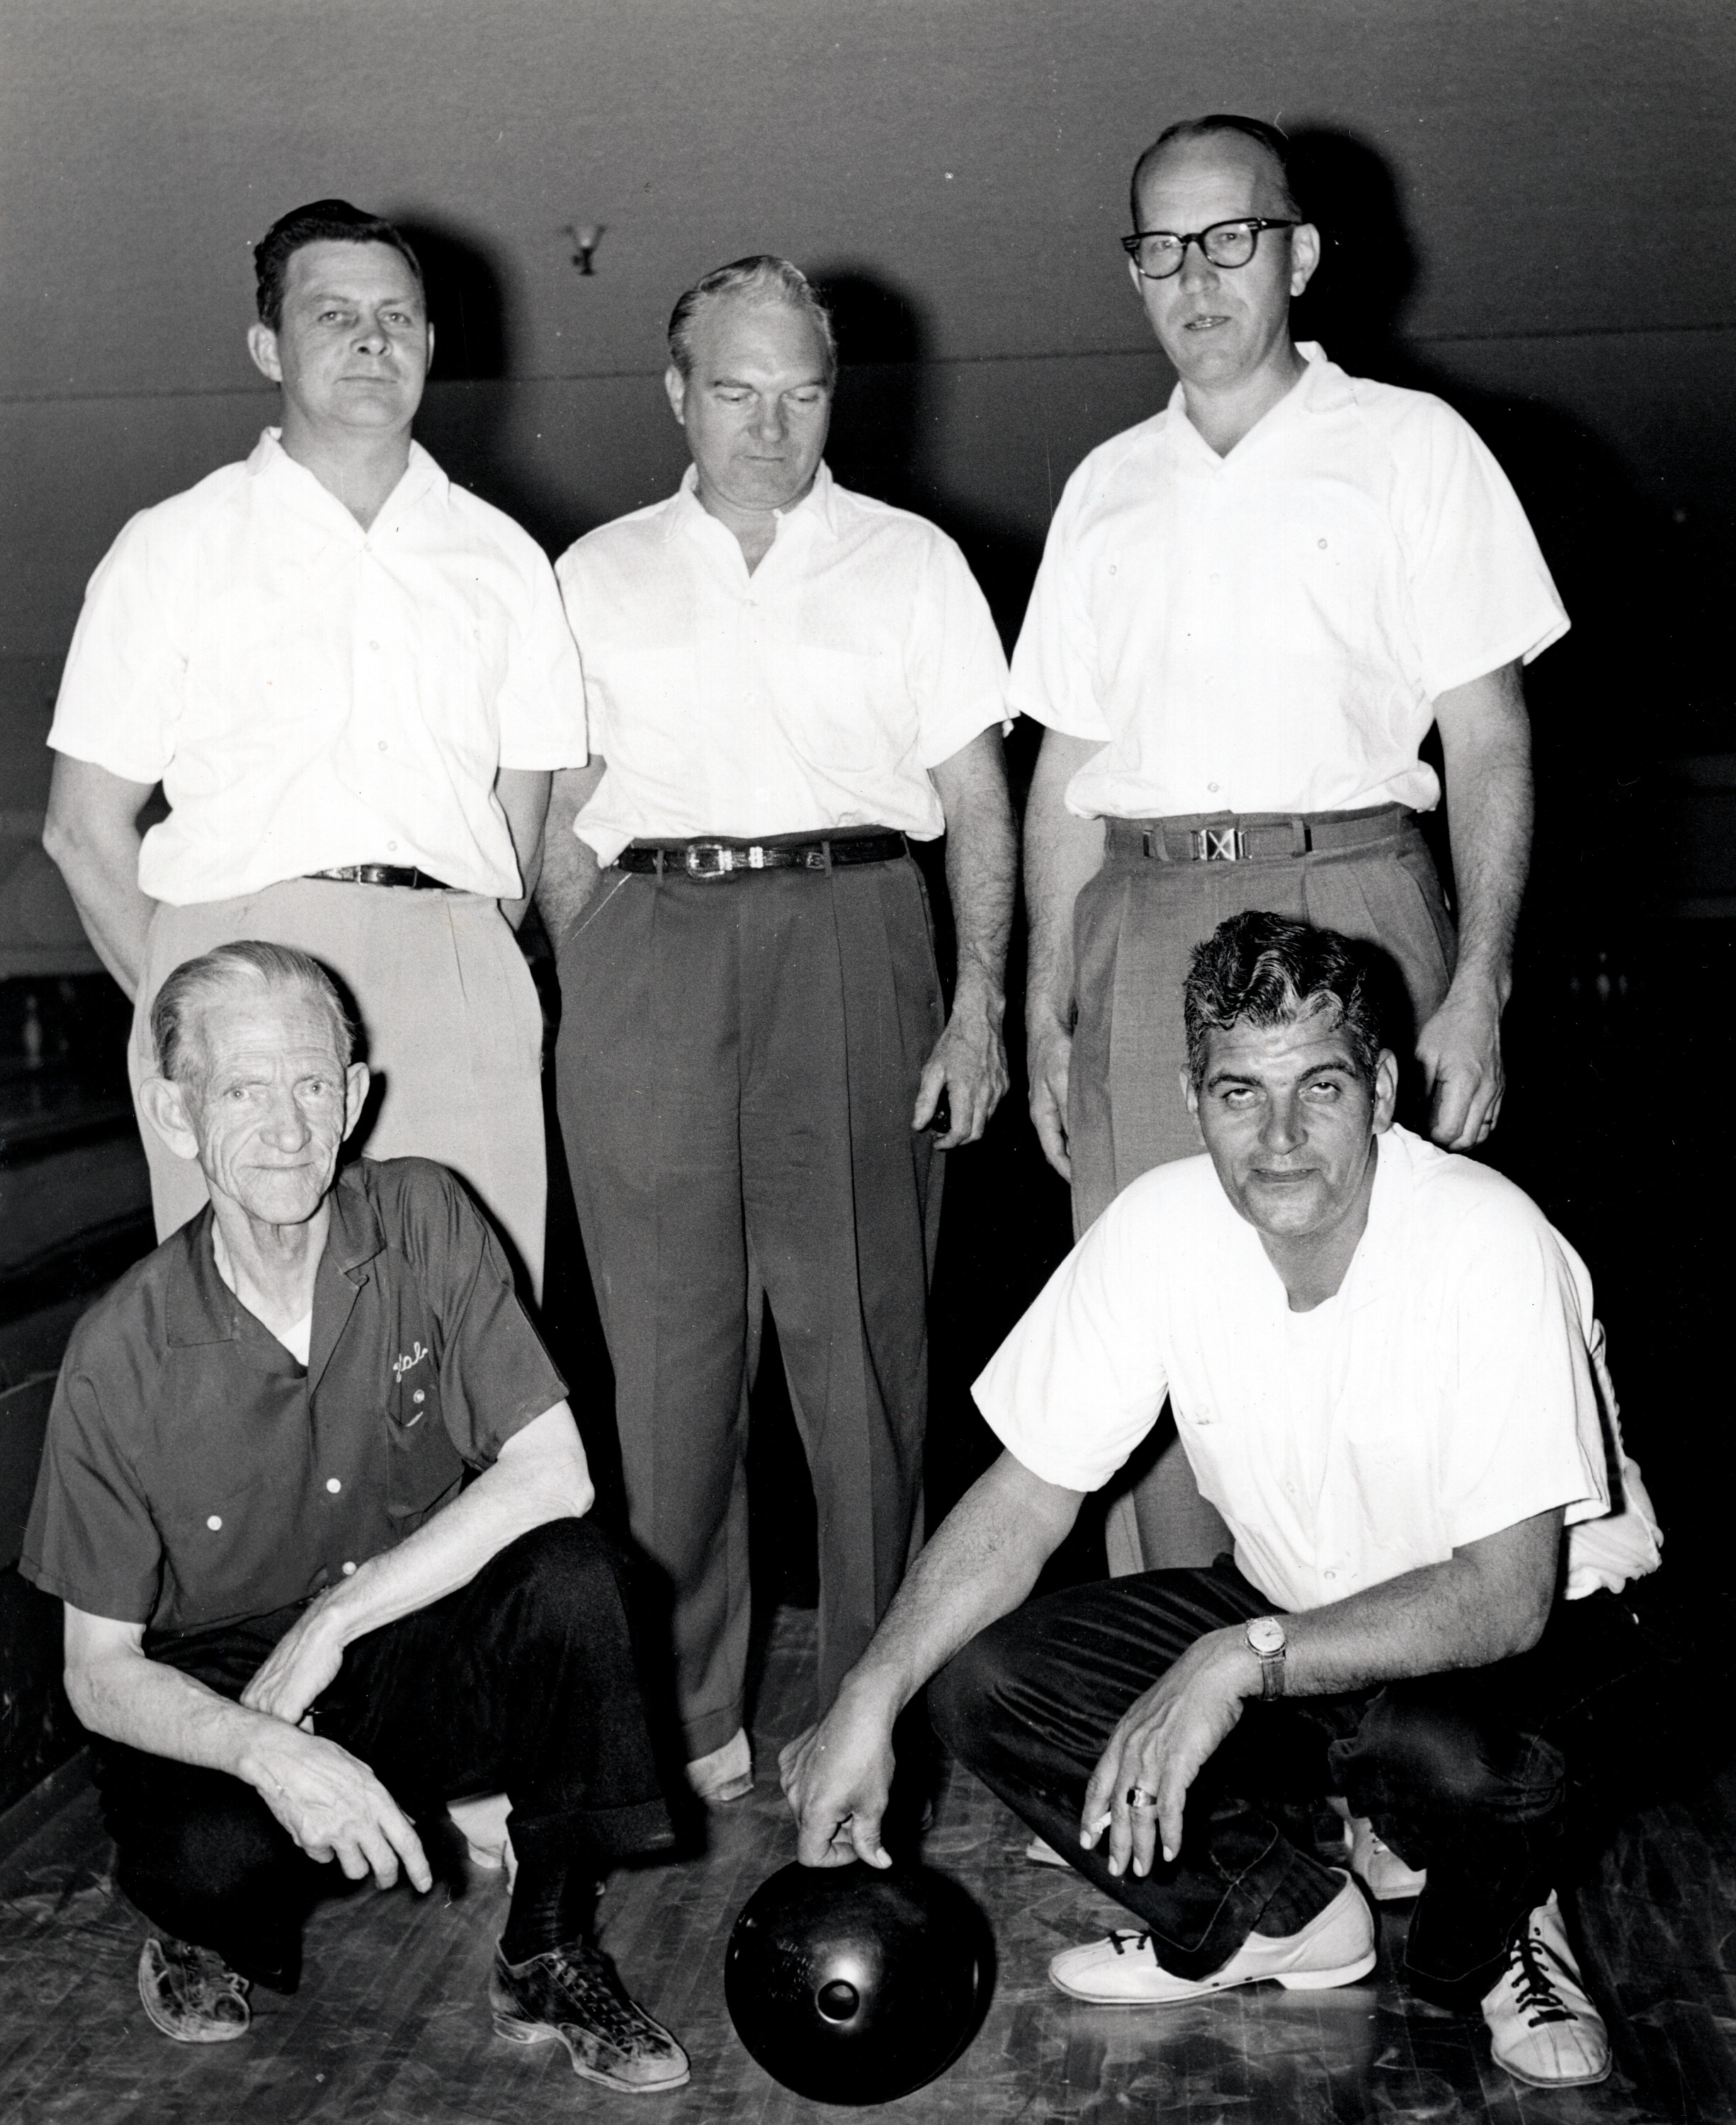 MGM Bowling Team - Harold Phillips (front left)